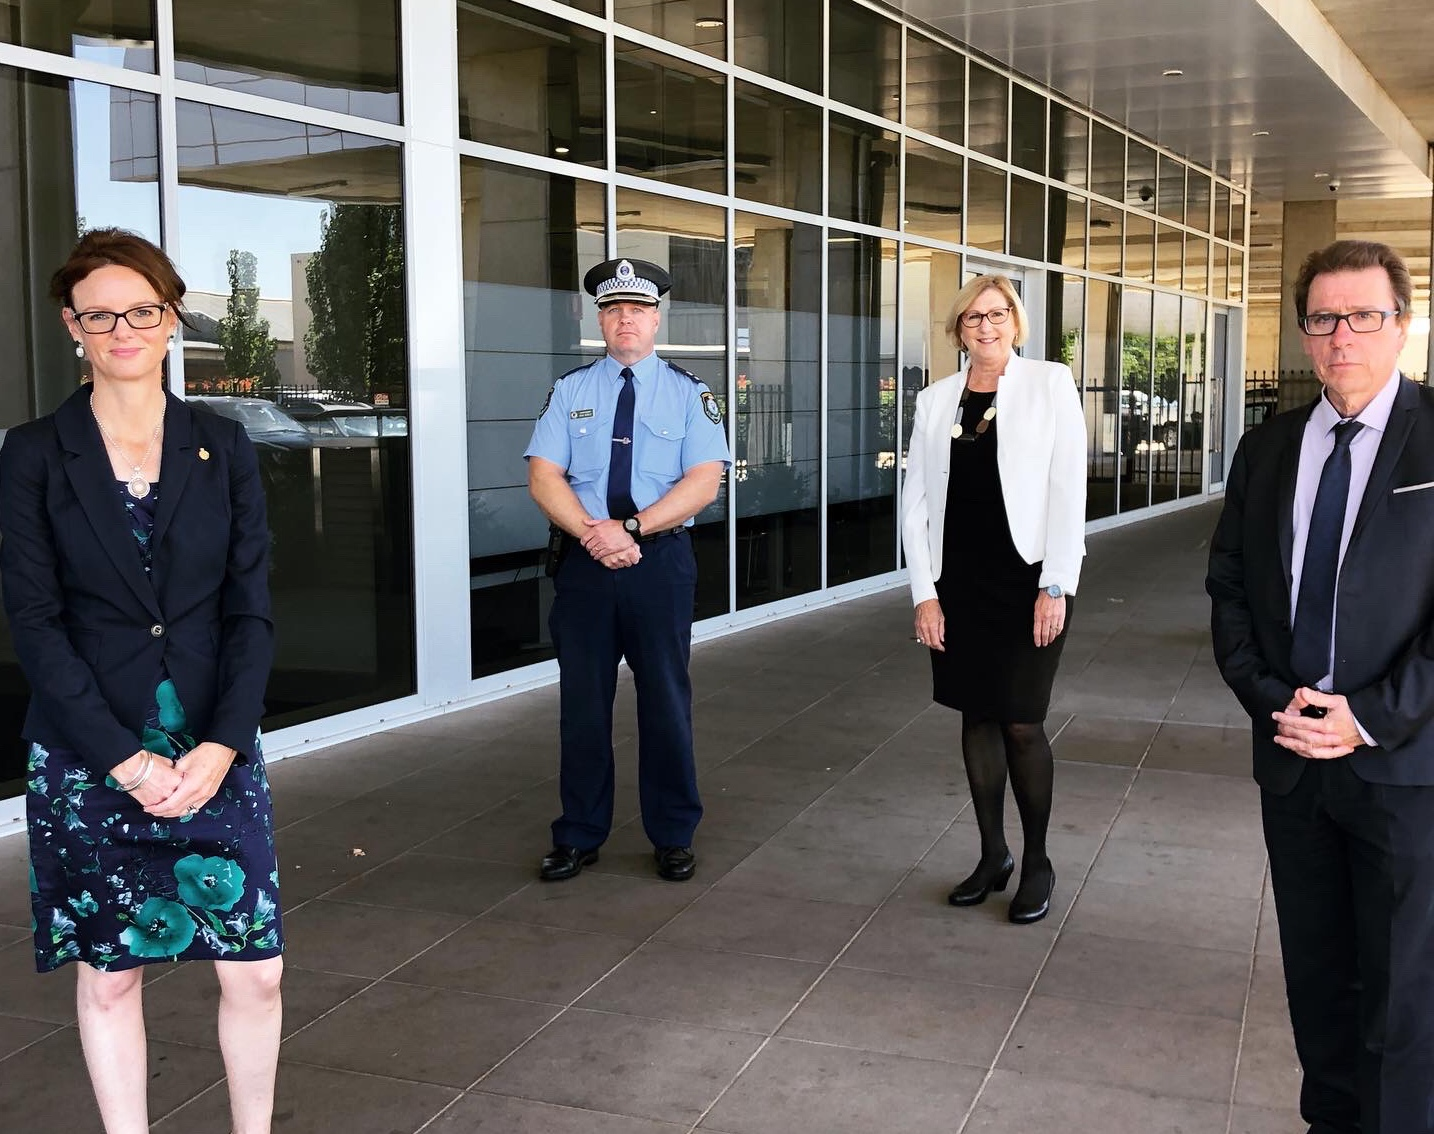 Steph Cooke, Superintendent Bob Noble, Jill Ludford and Joe McGirr stand 1.5 metres apart from each other in front of a dark glass building.